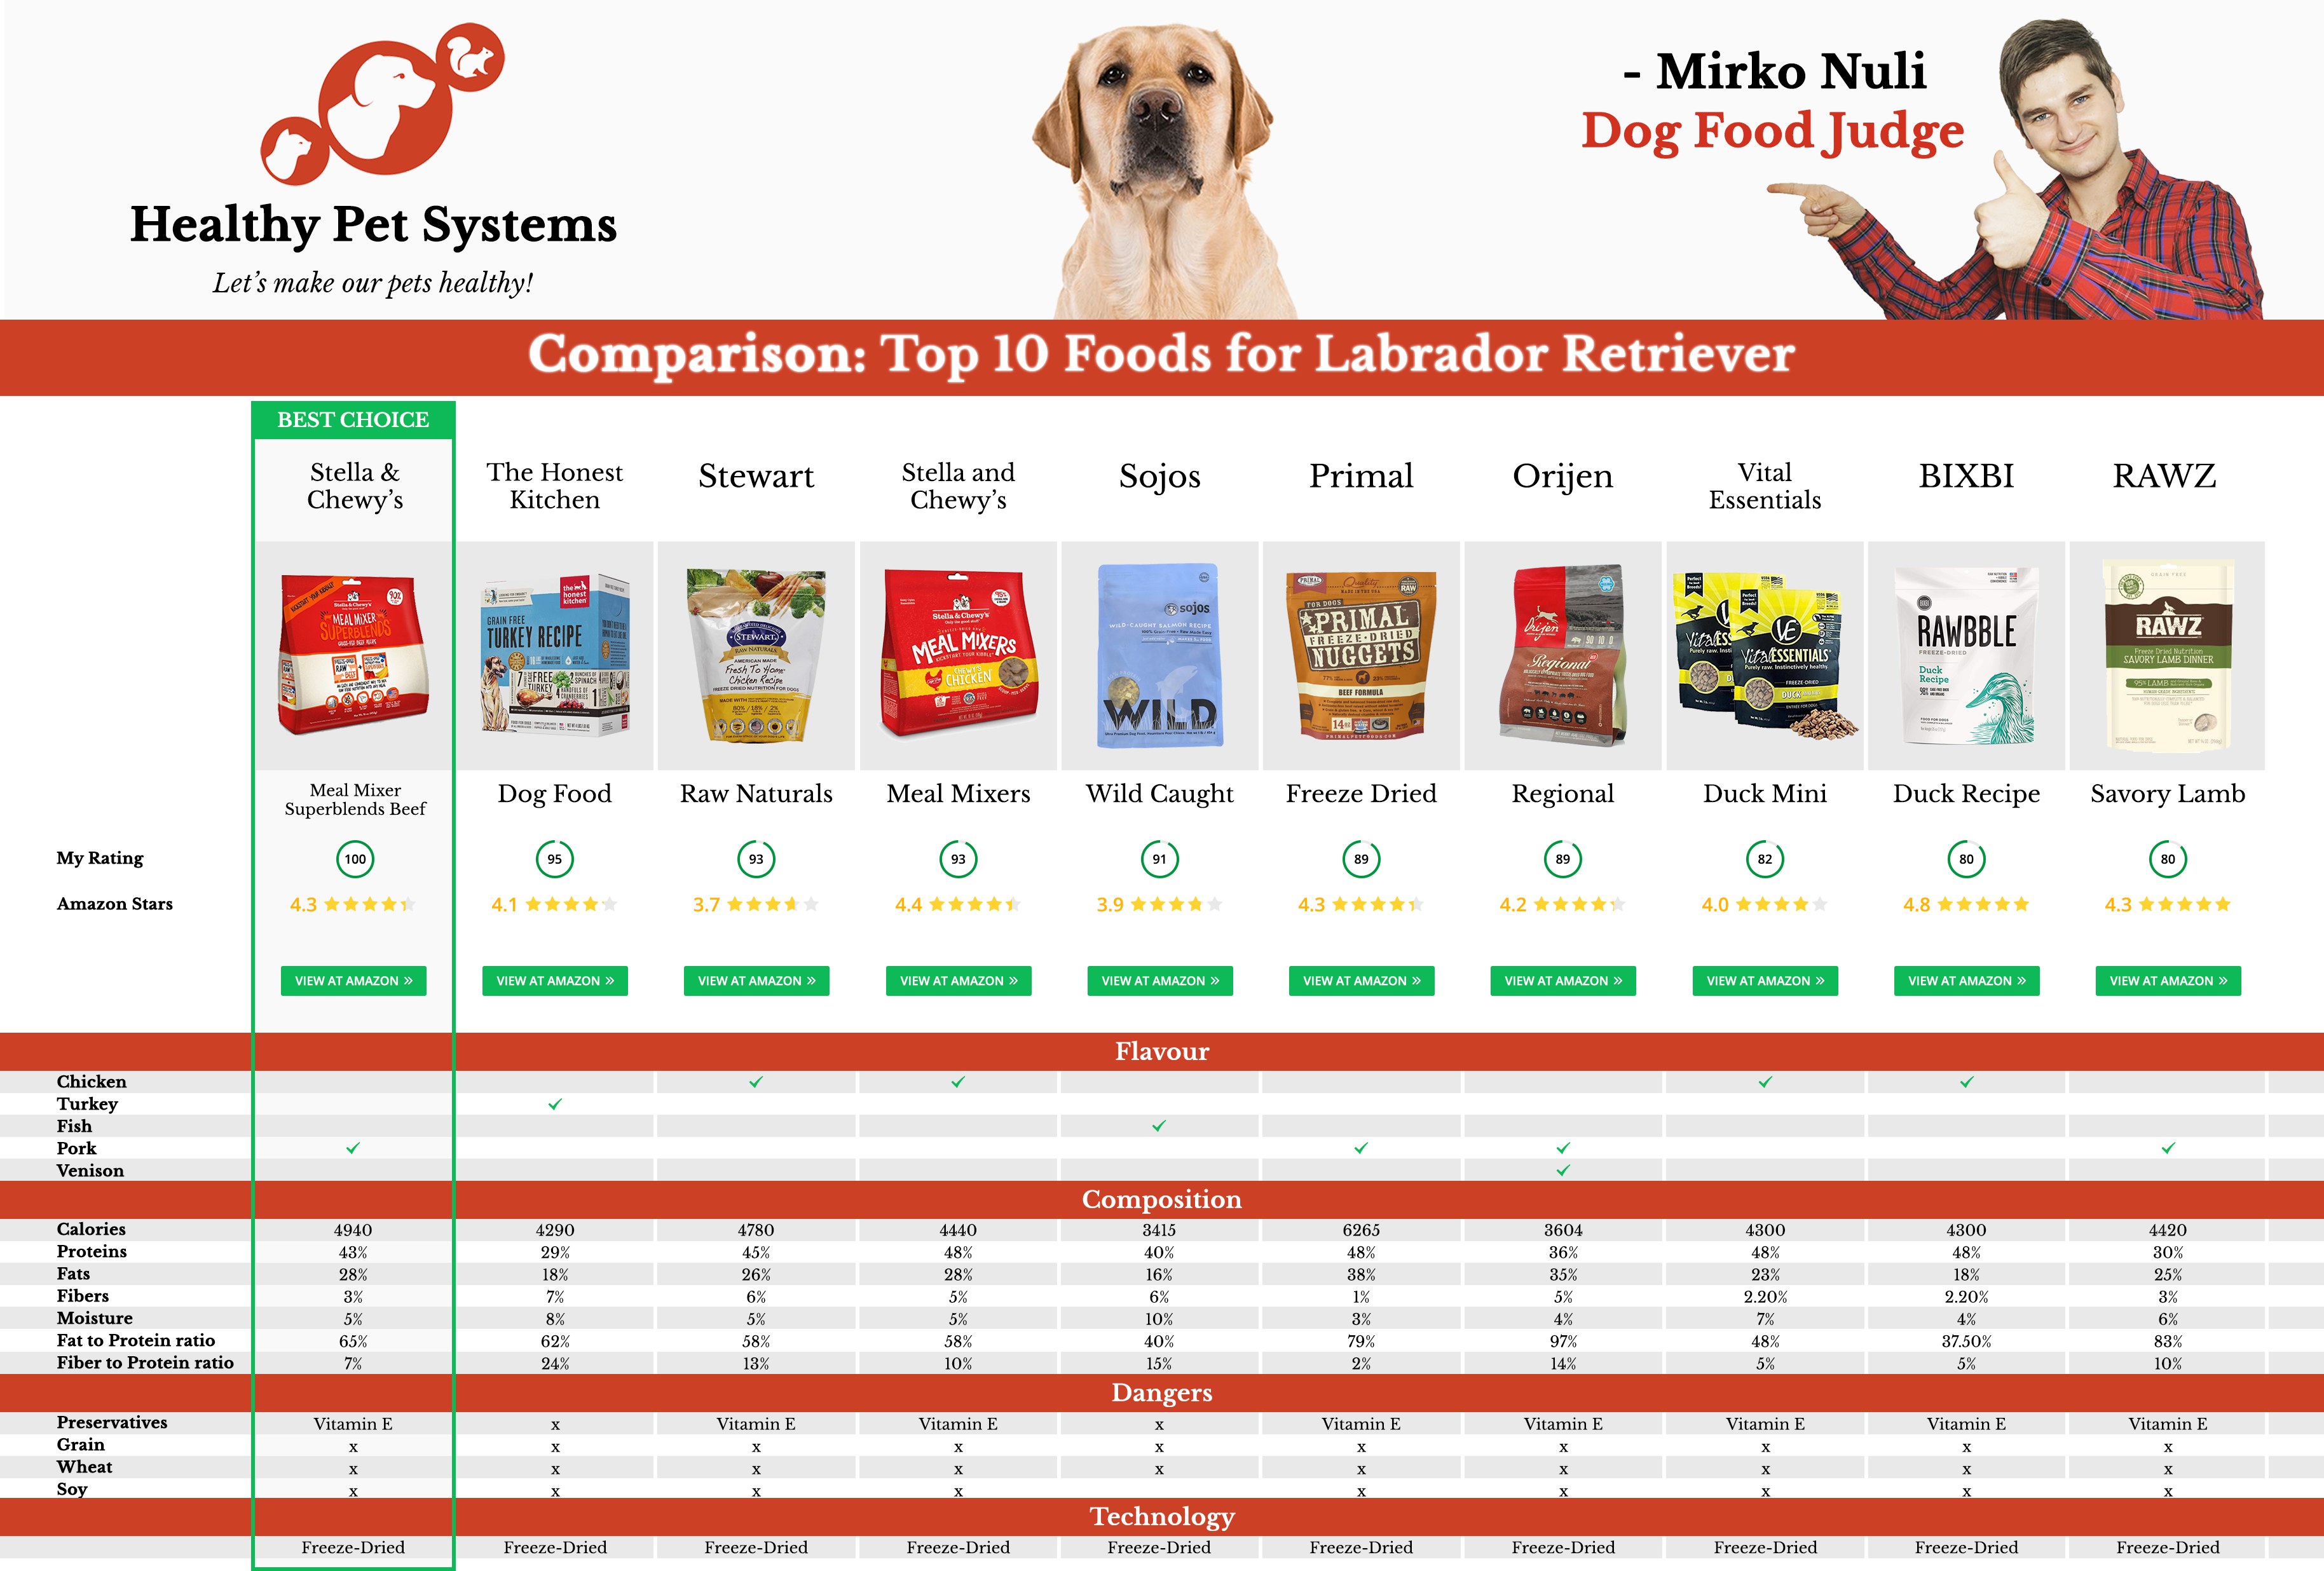 Comparison: Top 10 Foods for Labrador Retriever by Dog Food Judge Mirko Nuli